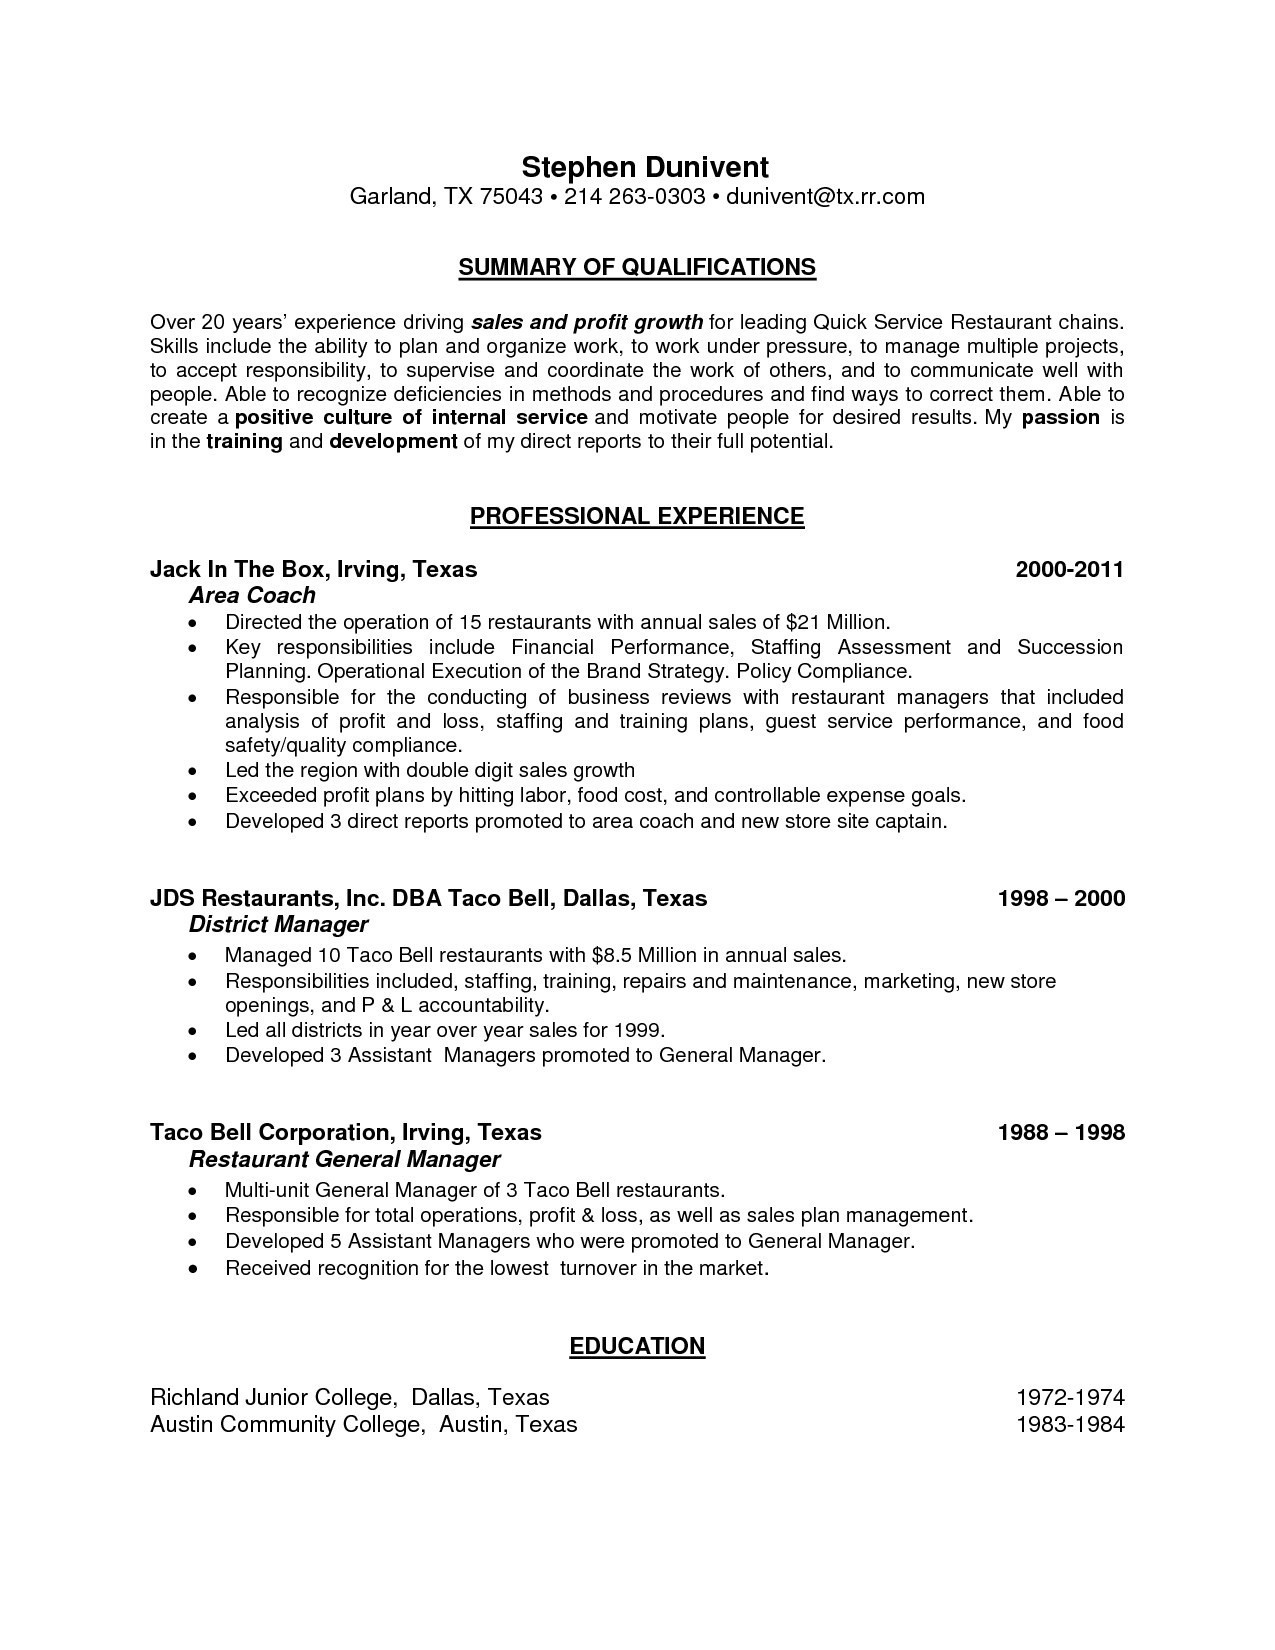 Sample Resume Skills - Skills Summary Resume Sample Fresh Resume Samples Skills Fresh